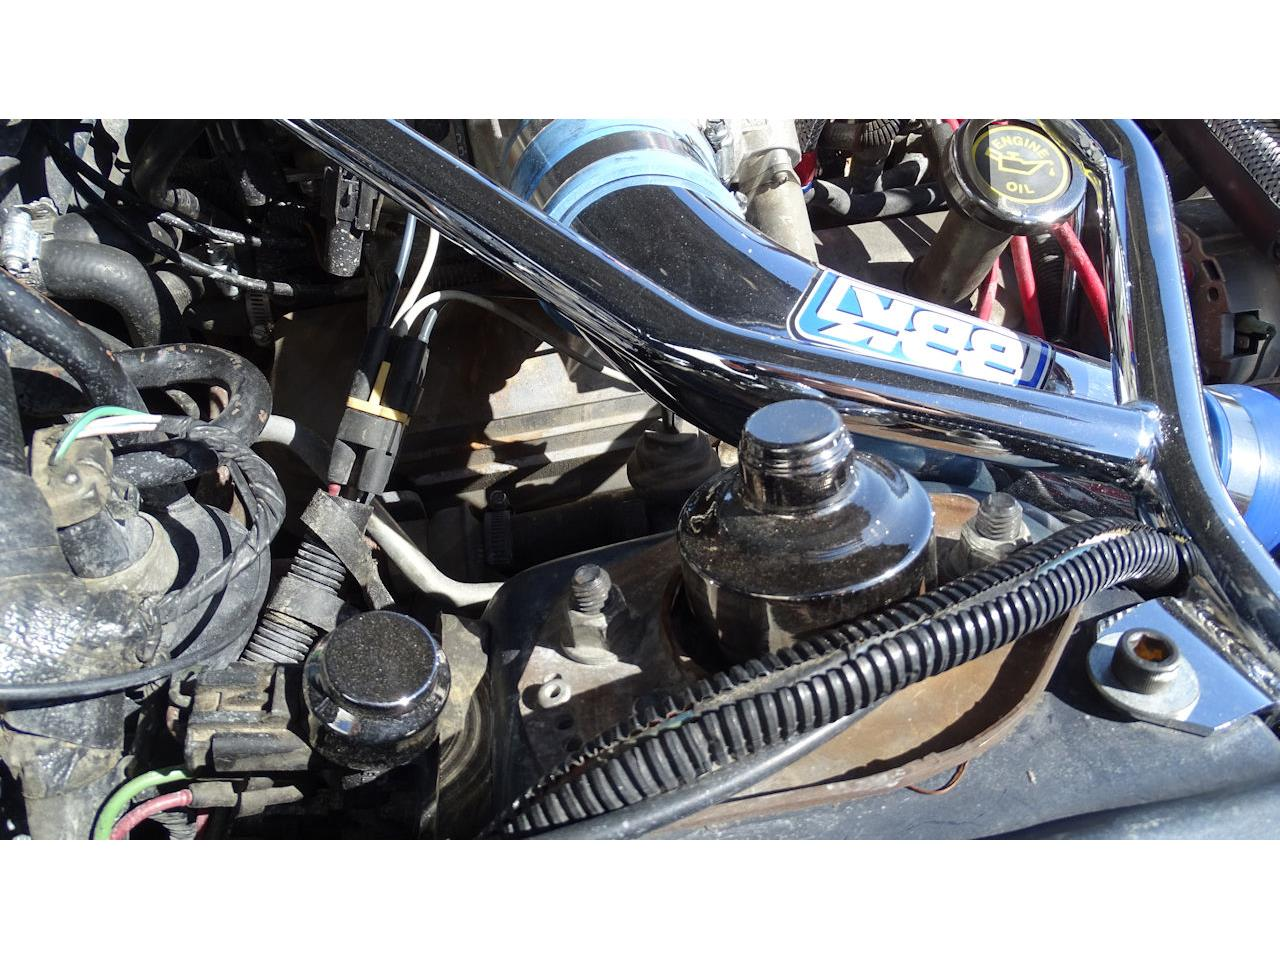 1988 Ford Mustang For Sale Cc 1150183 Fuel Pump Large Picture Of 88 Onhj